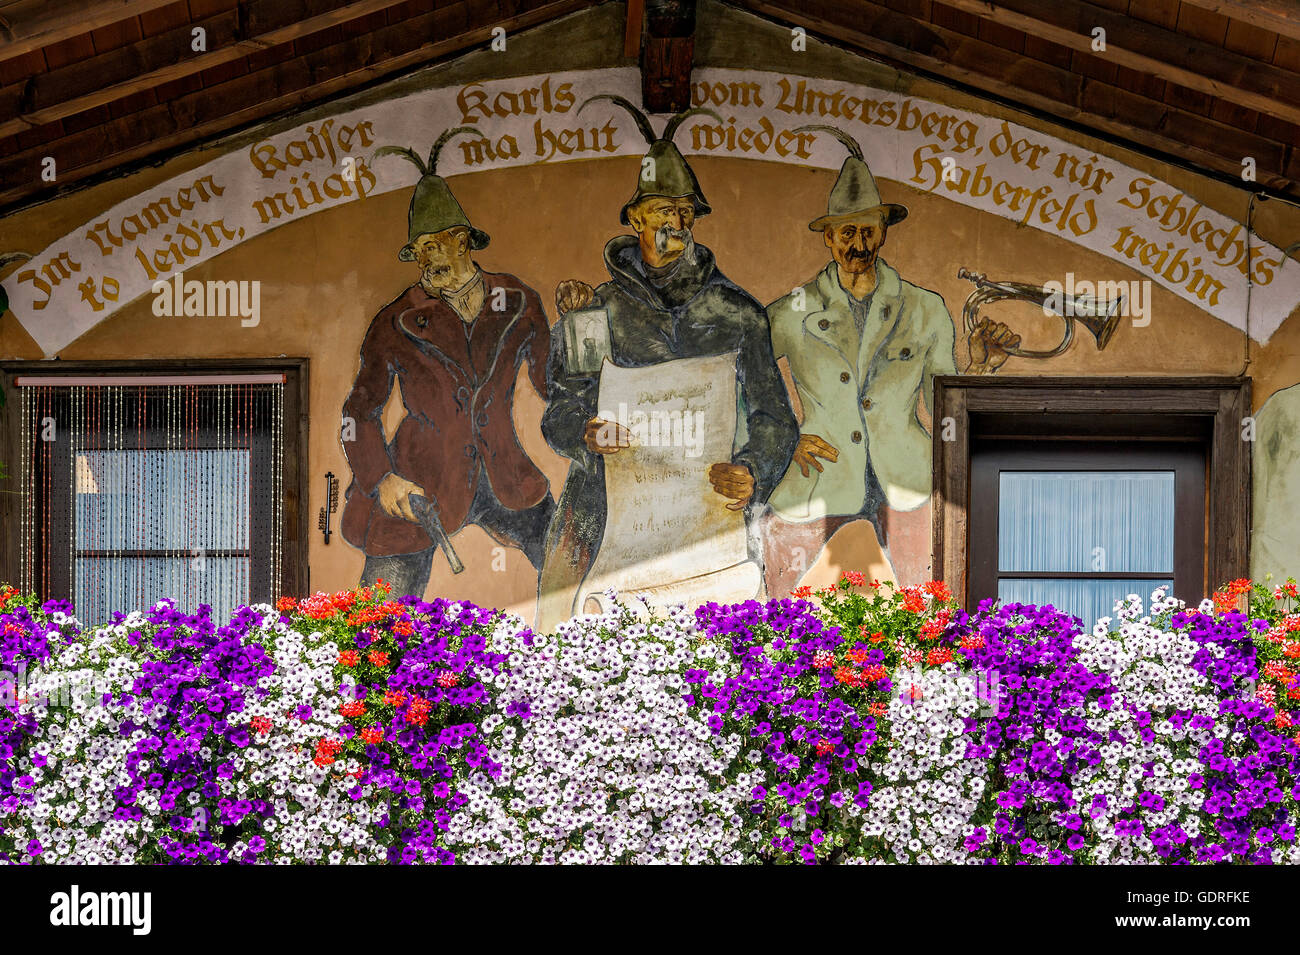 Farmhouse gable with Lüftlmalerei wall paintings and floral decoration, Miesbach, Upper Bavaria, Bavaria, Germany - Stock Image